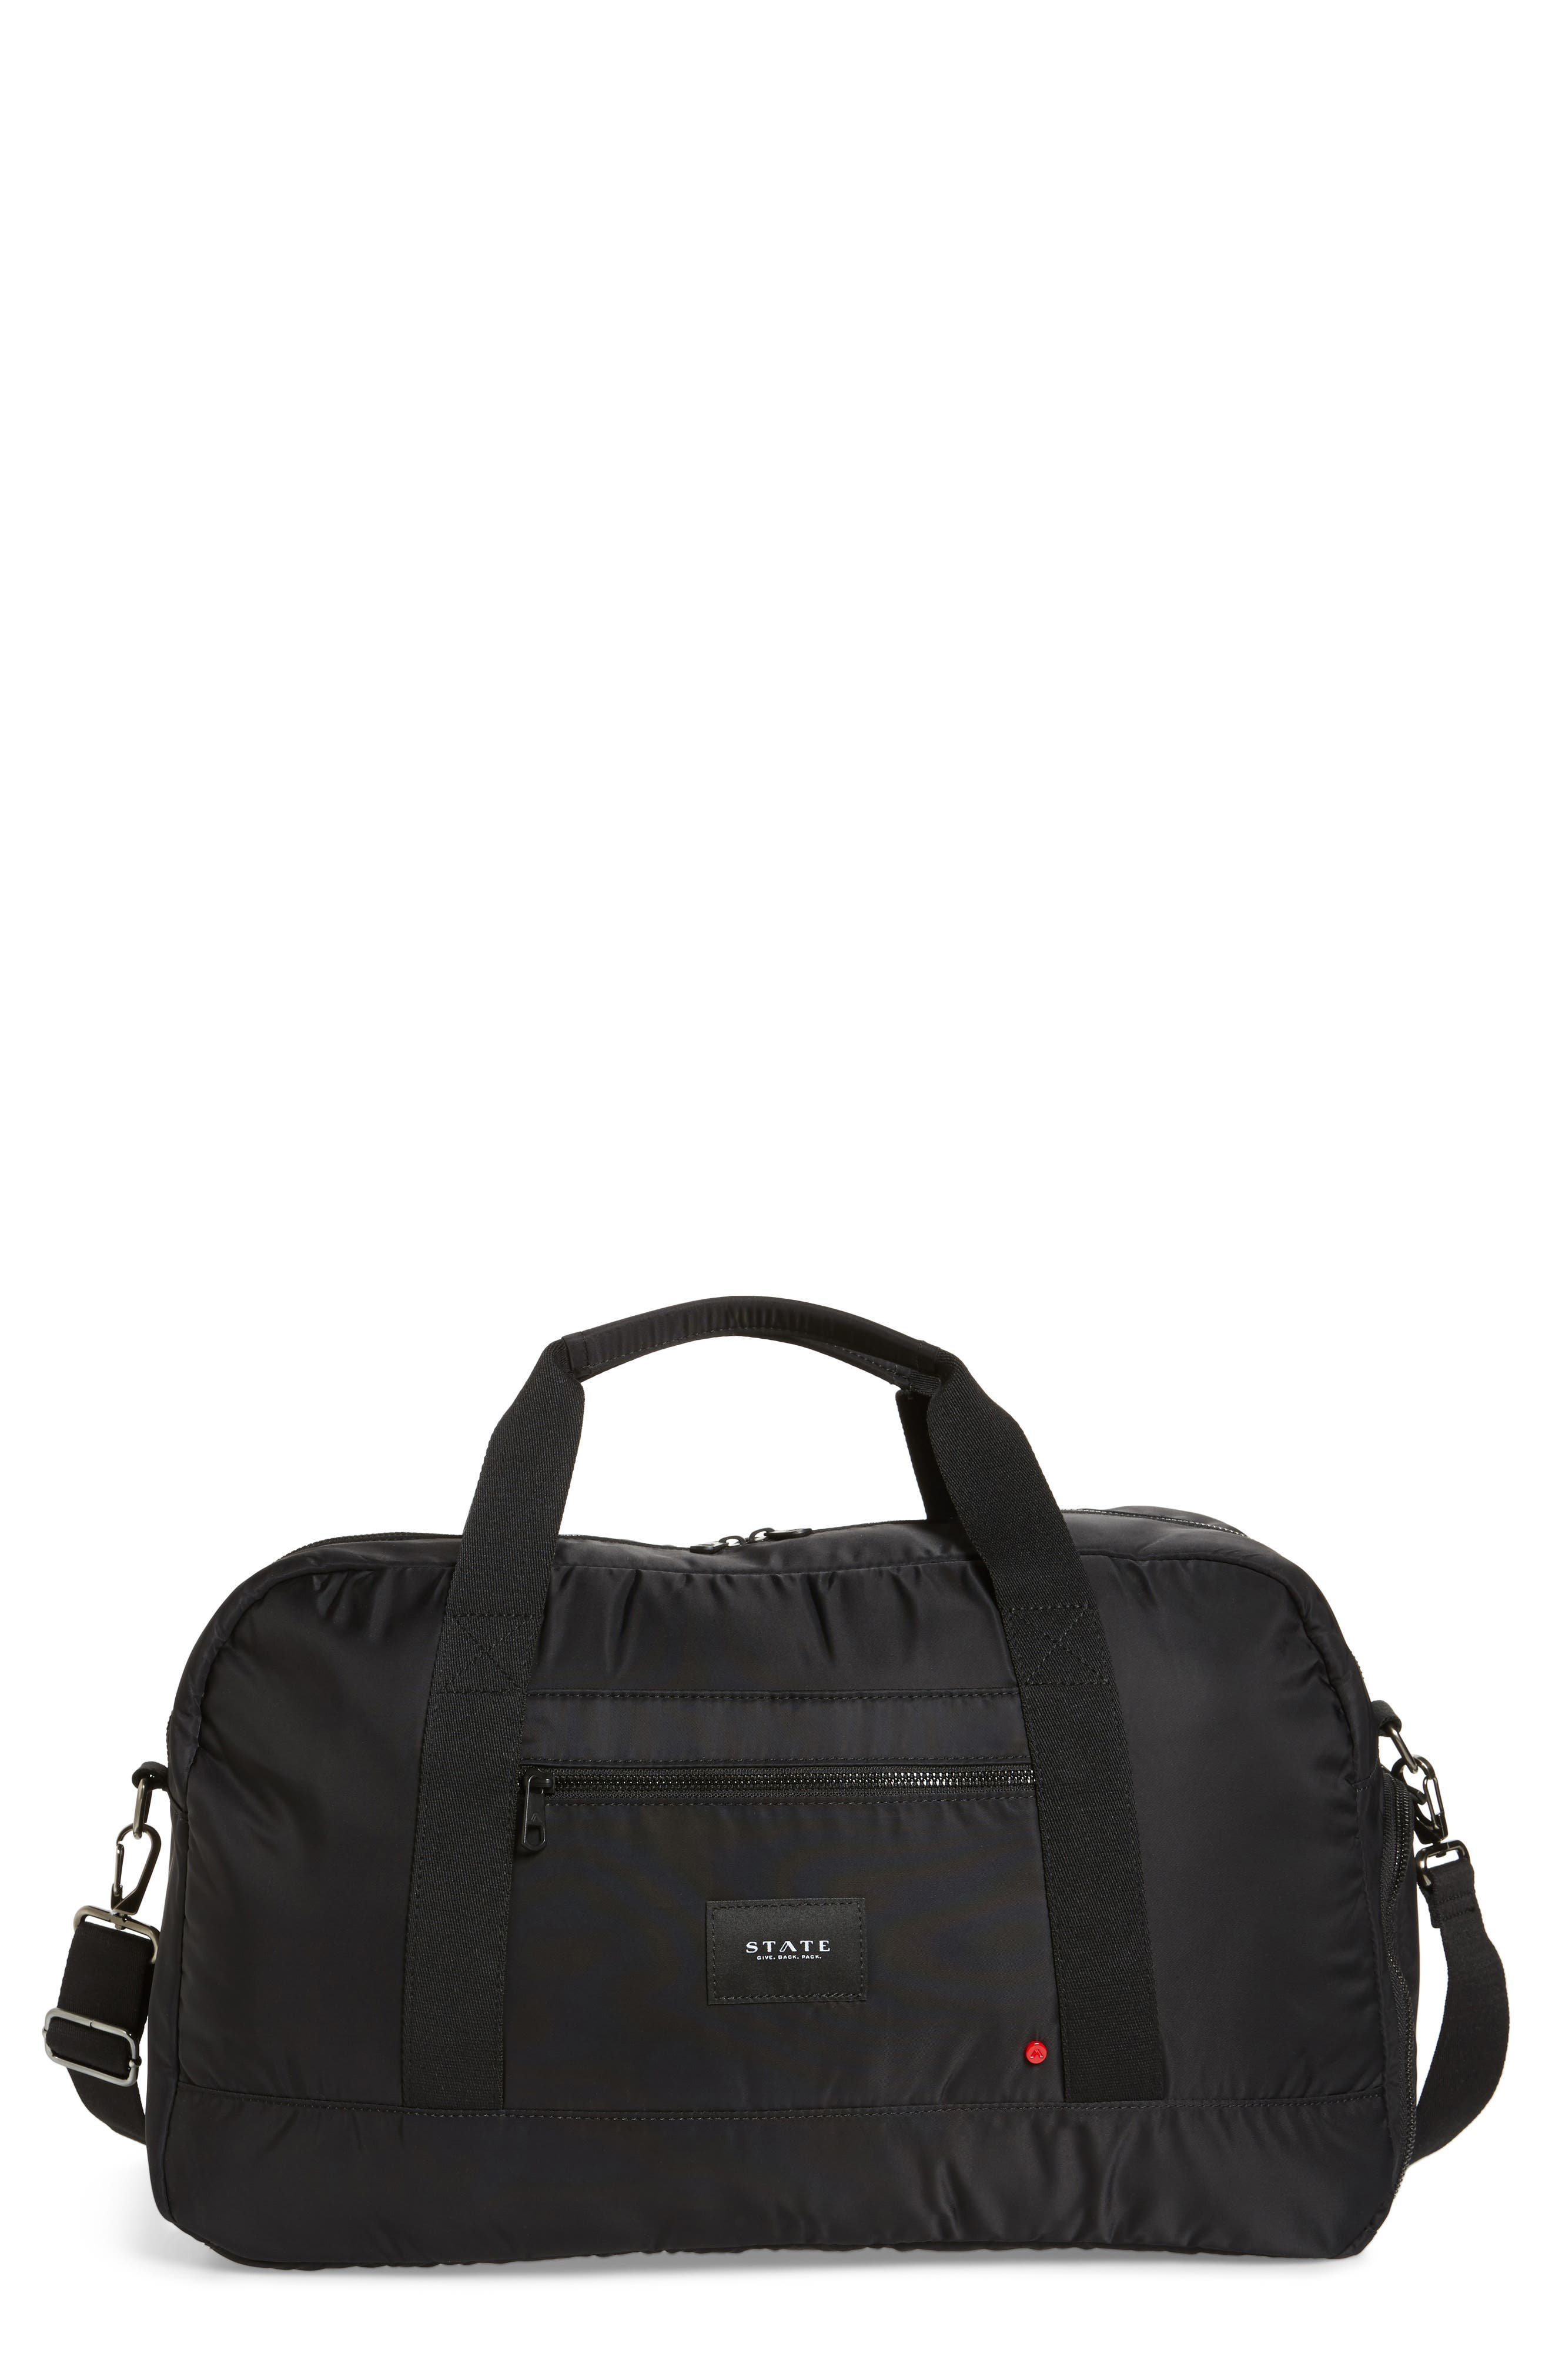 The Heights - Franklin Nylon Duffel Bag,                             Main thumbnail 1, color,                             Black